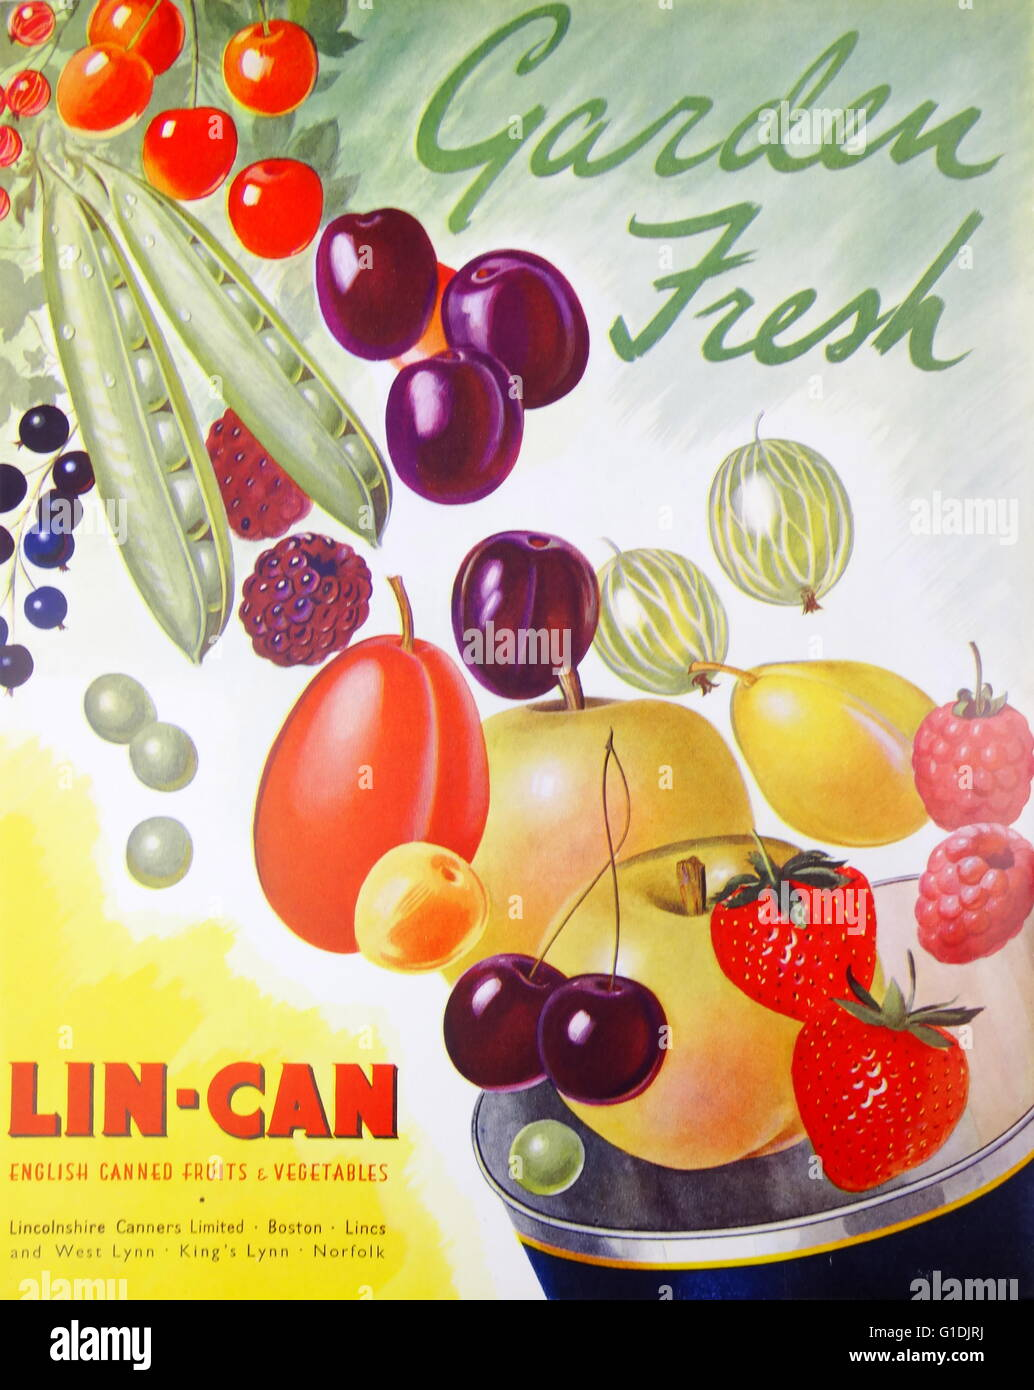 Advert for Lin-Can Canned Fruit - Stock Image